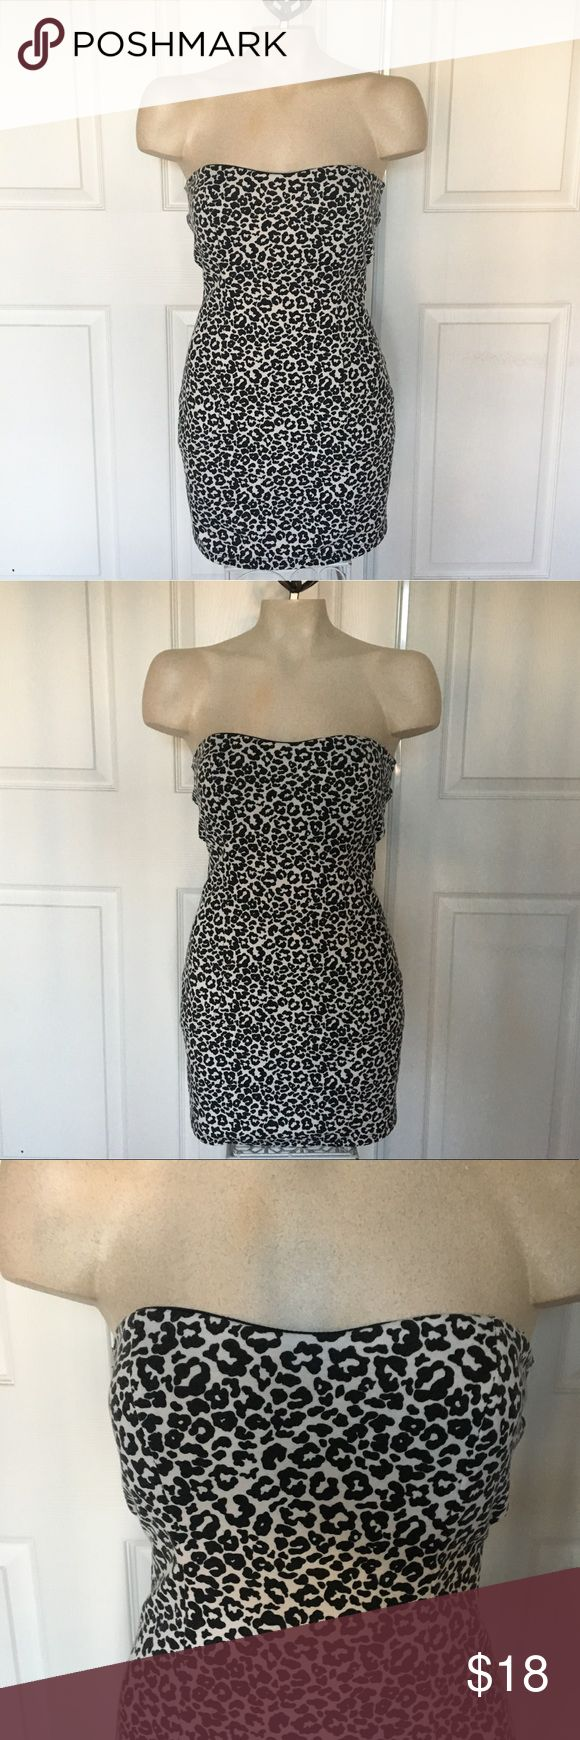 Send offers! Foreign Exchange Strapless Bodycon So fun for a night out! Strapless animal print Bodycon dress by Foreign Exchange! Fun back detail, zips up. Best fits a Small! NO TRADES Foreign Exchange Dresses Strapless